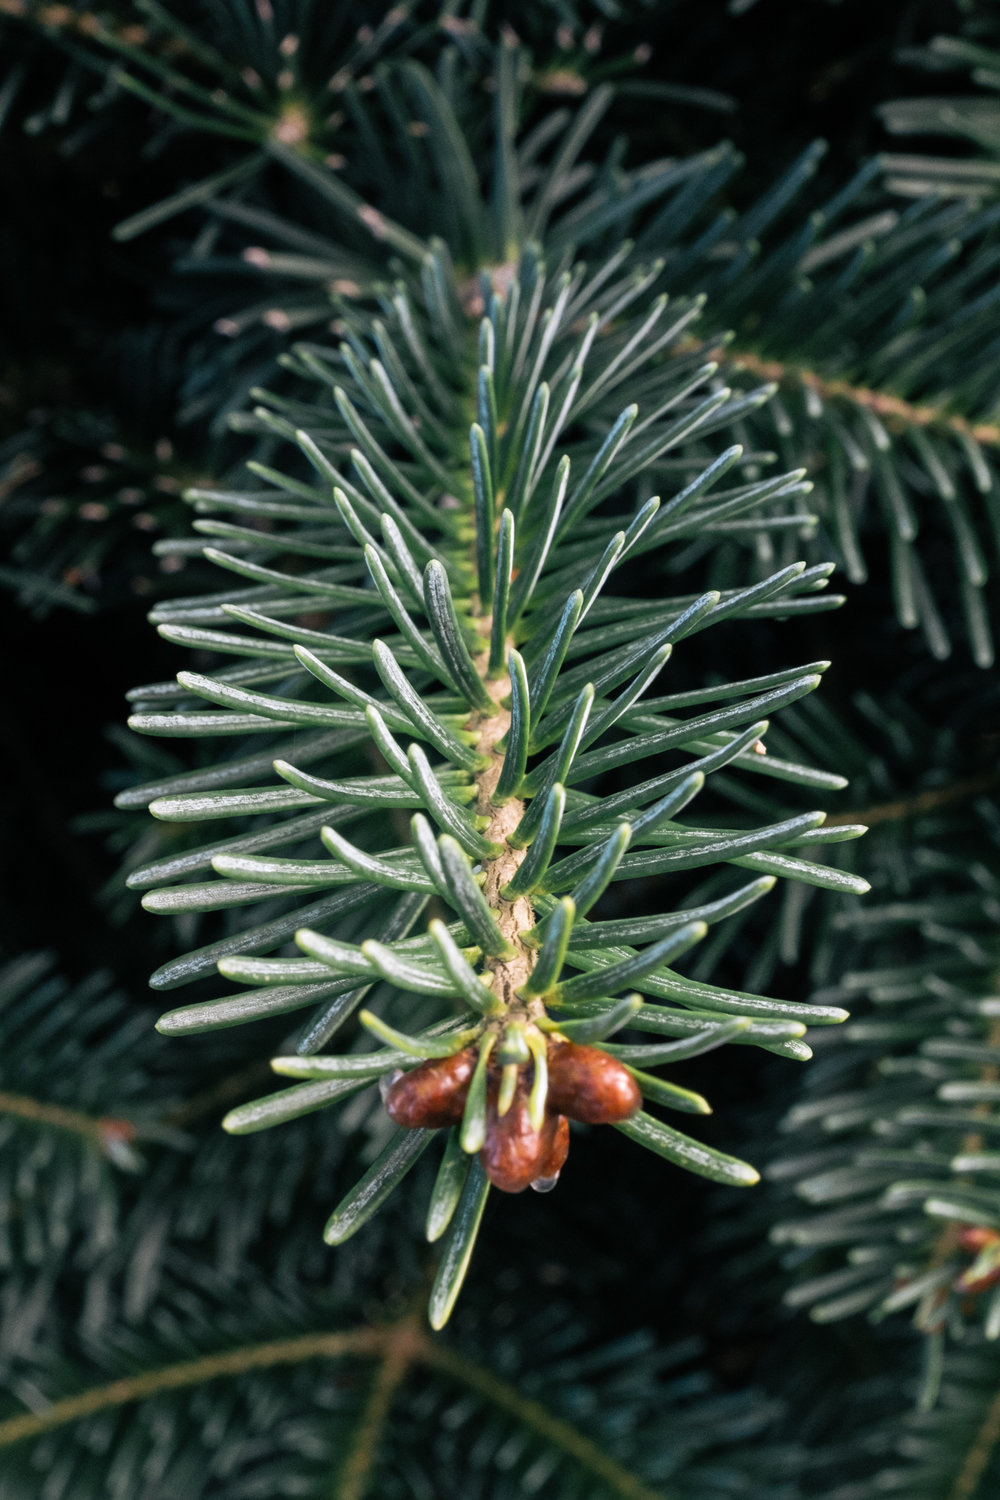 Bracted_Balsam_Fir_needles.jpg